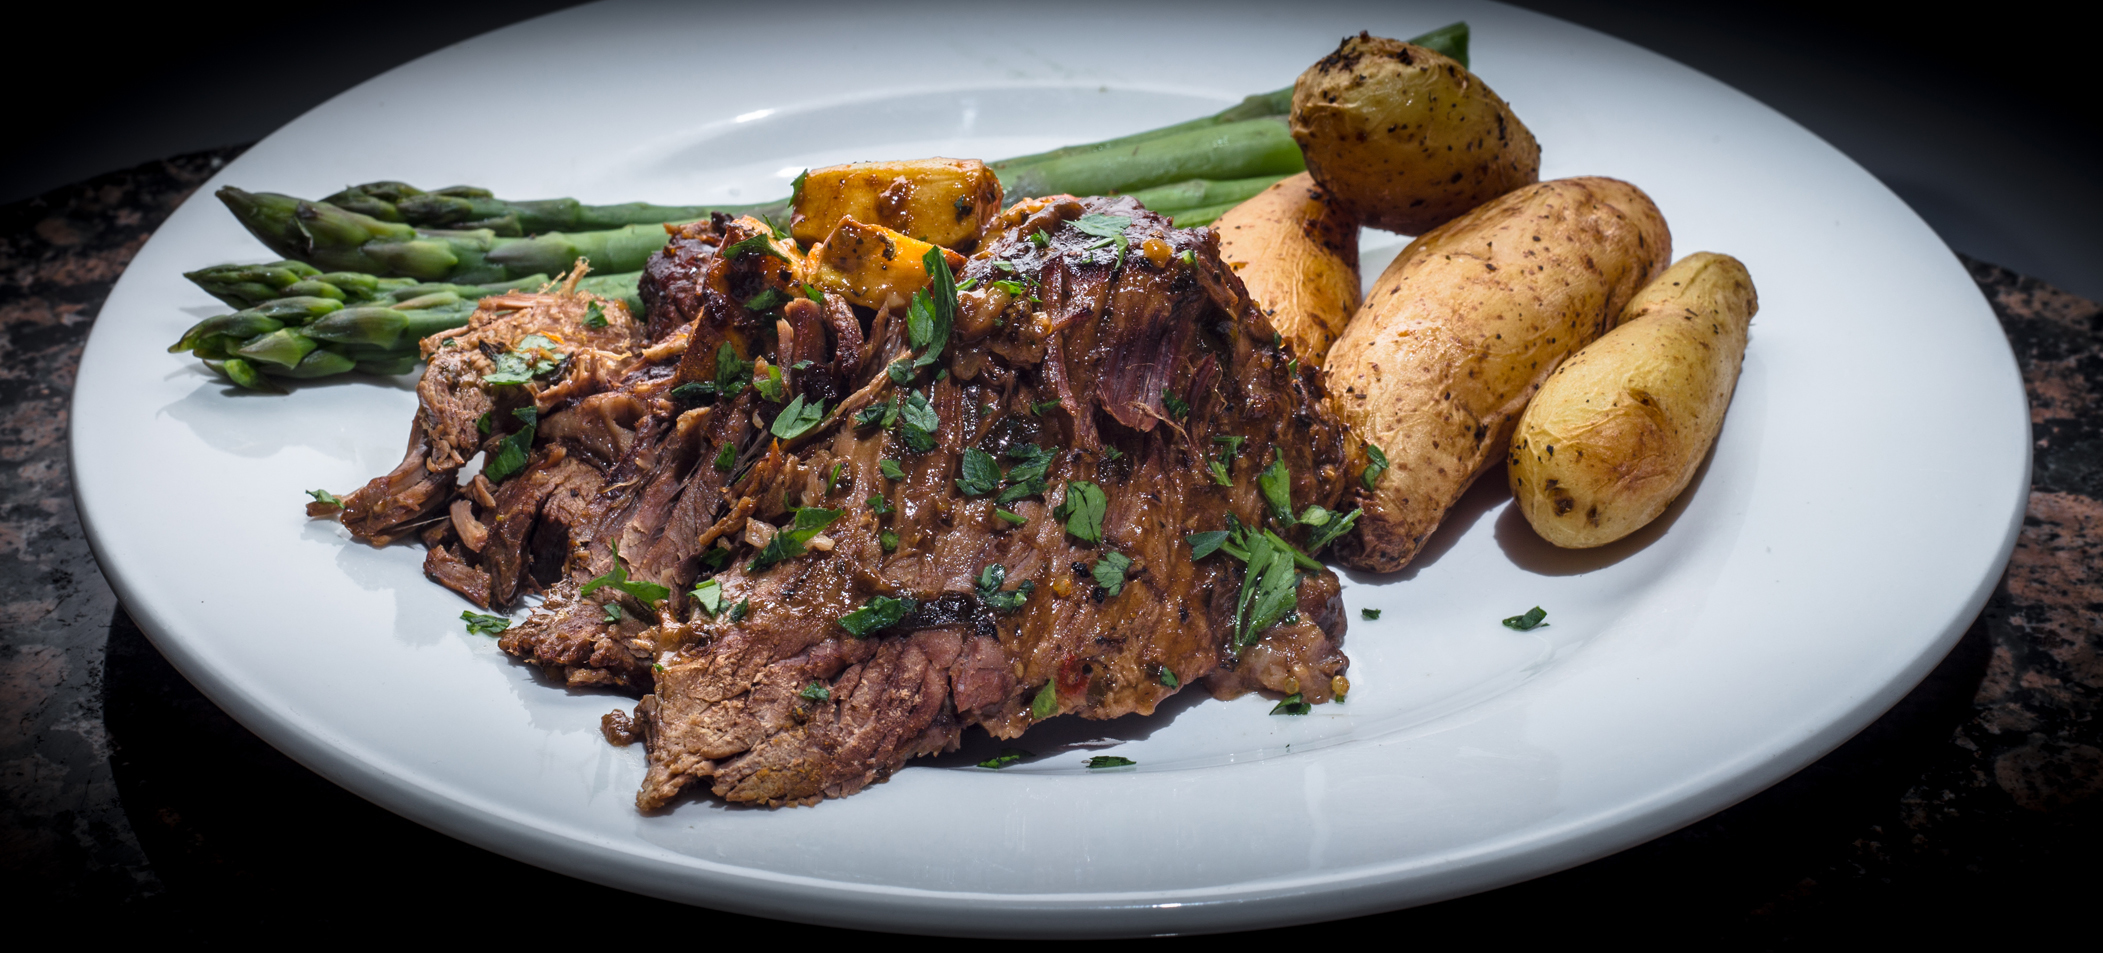 Beef Brisket with Asparagus & Fingerling Potatoes